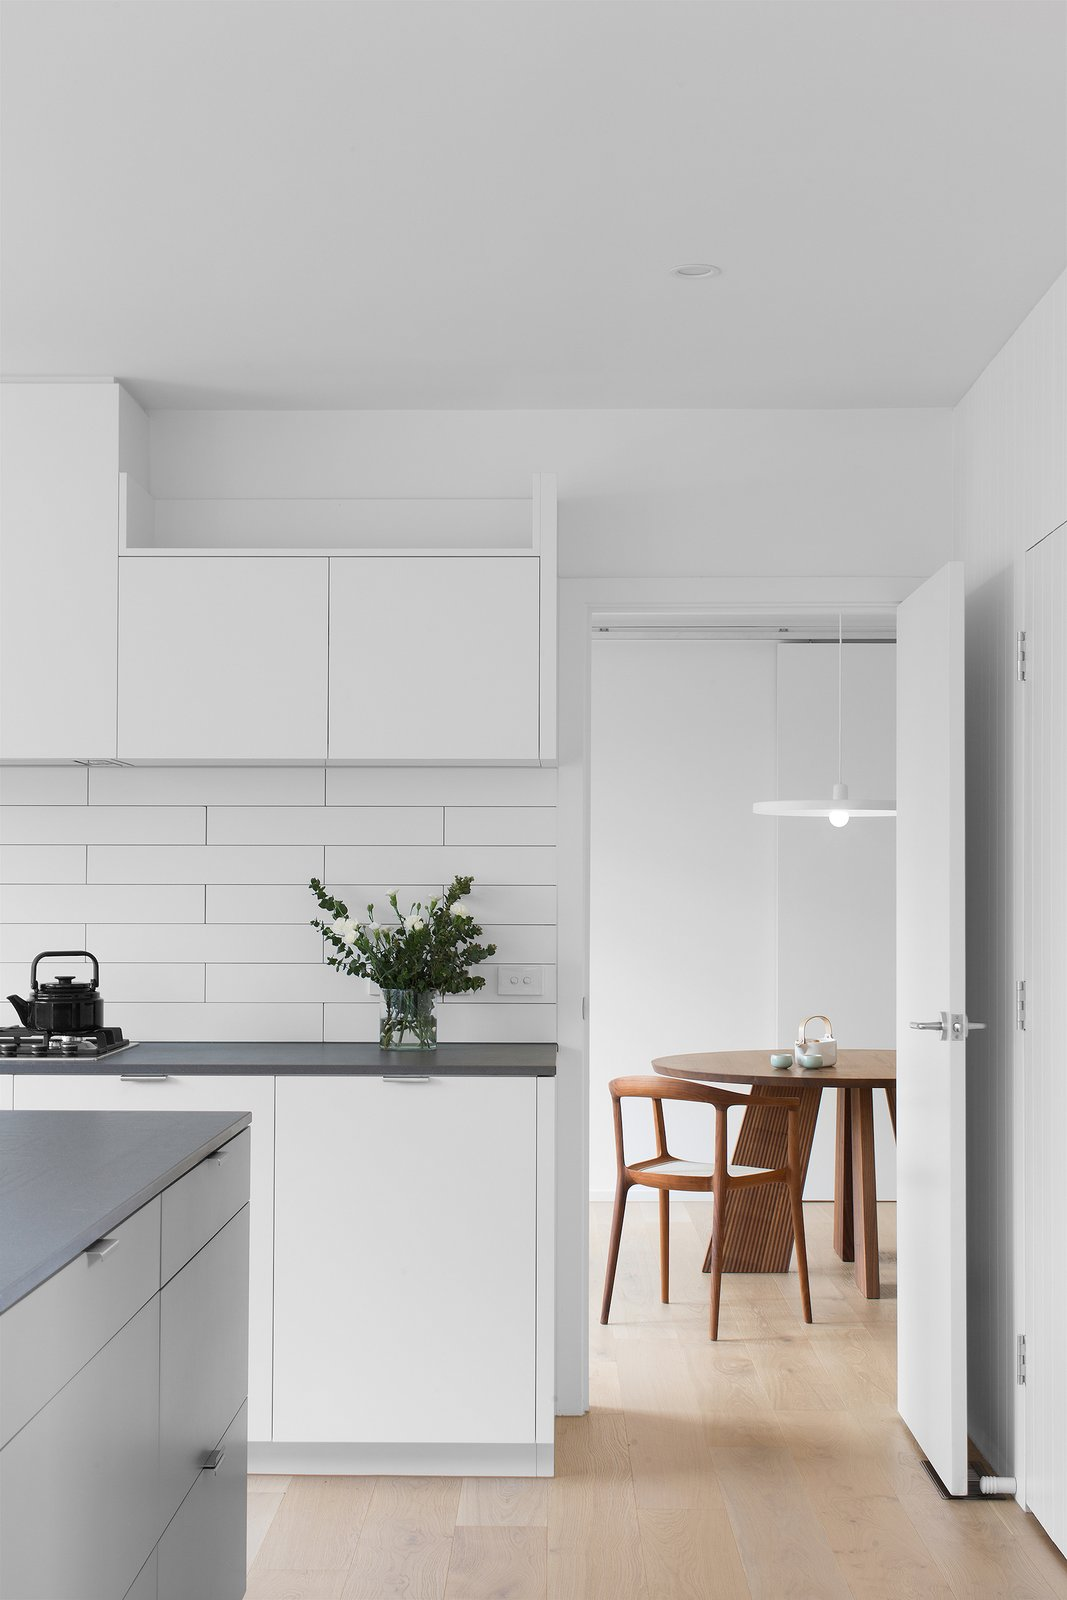 Tagged: Kitchen, Engineered Quartz Counter, White Cabinet, Light Hardwood Floor, Ceramic Tile Backsplashe, Subway Tile Backsplashe, Pendant Lighting, and Range.  Corhampton Rd Residence by Leibal